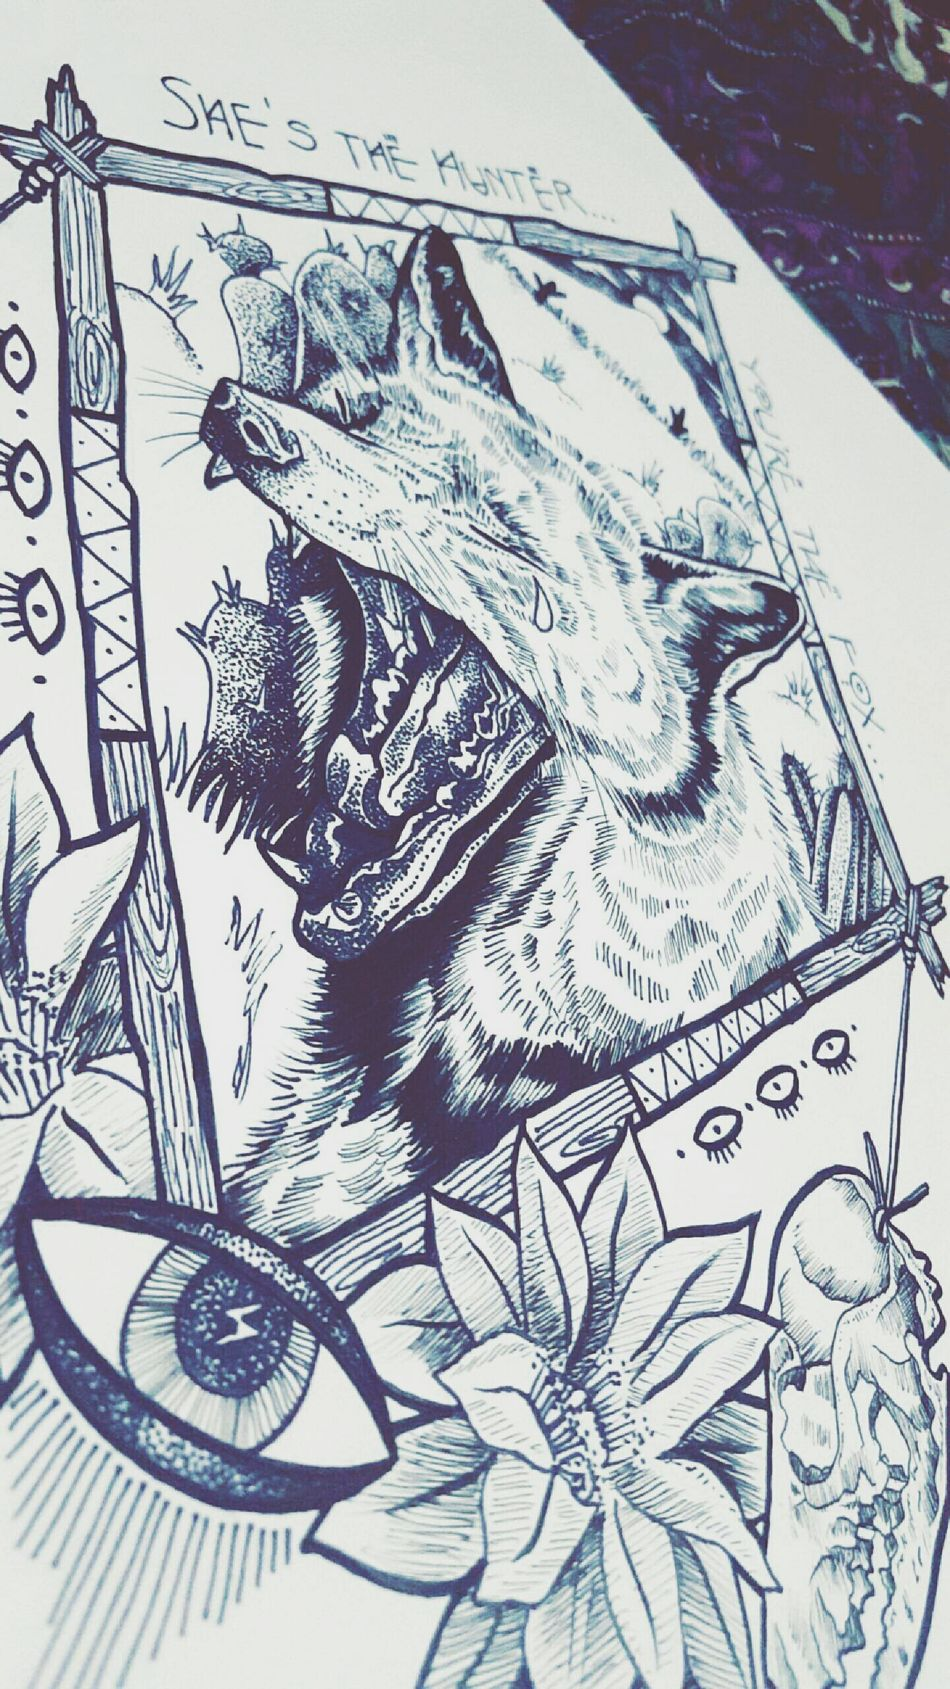 She's the hunter... You're the fox Creating Australia Melbourneartists Love Createdaily Inspire Photography POTD Life Nature Dotwork Fineliner Illustration Art Artist Skulls Flowers Animal Bohemian Summerstone Redfox ThirdEye Desert Tears